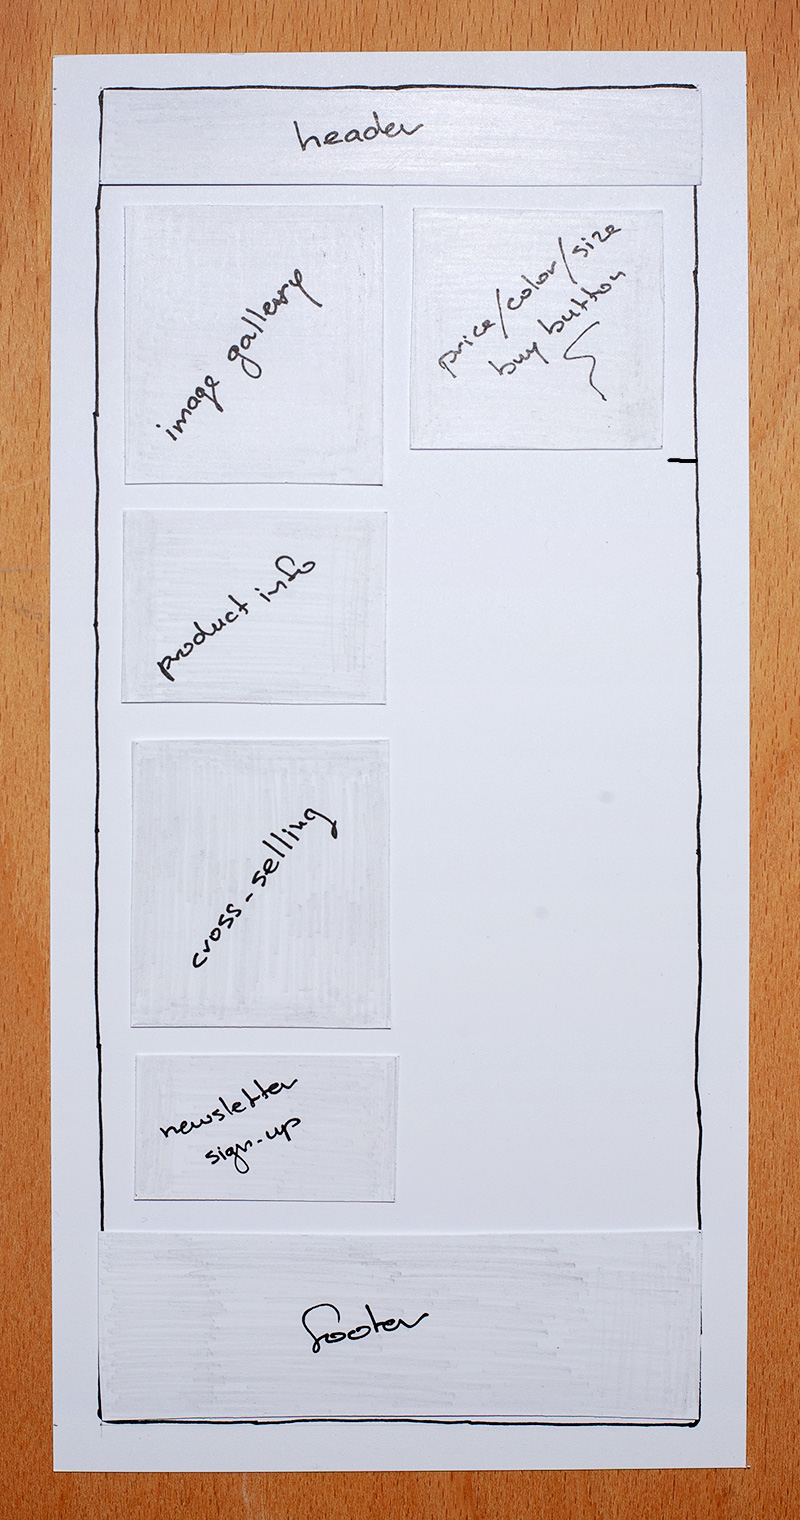 Page wireframe step 1 - Hierarchy